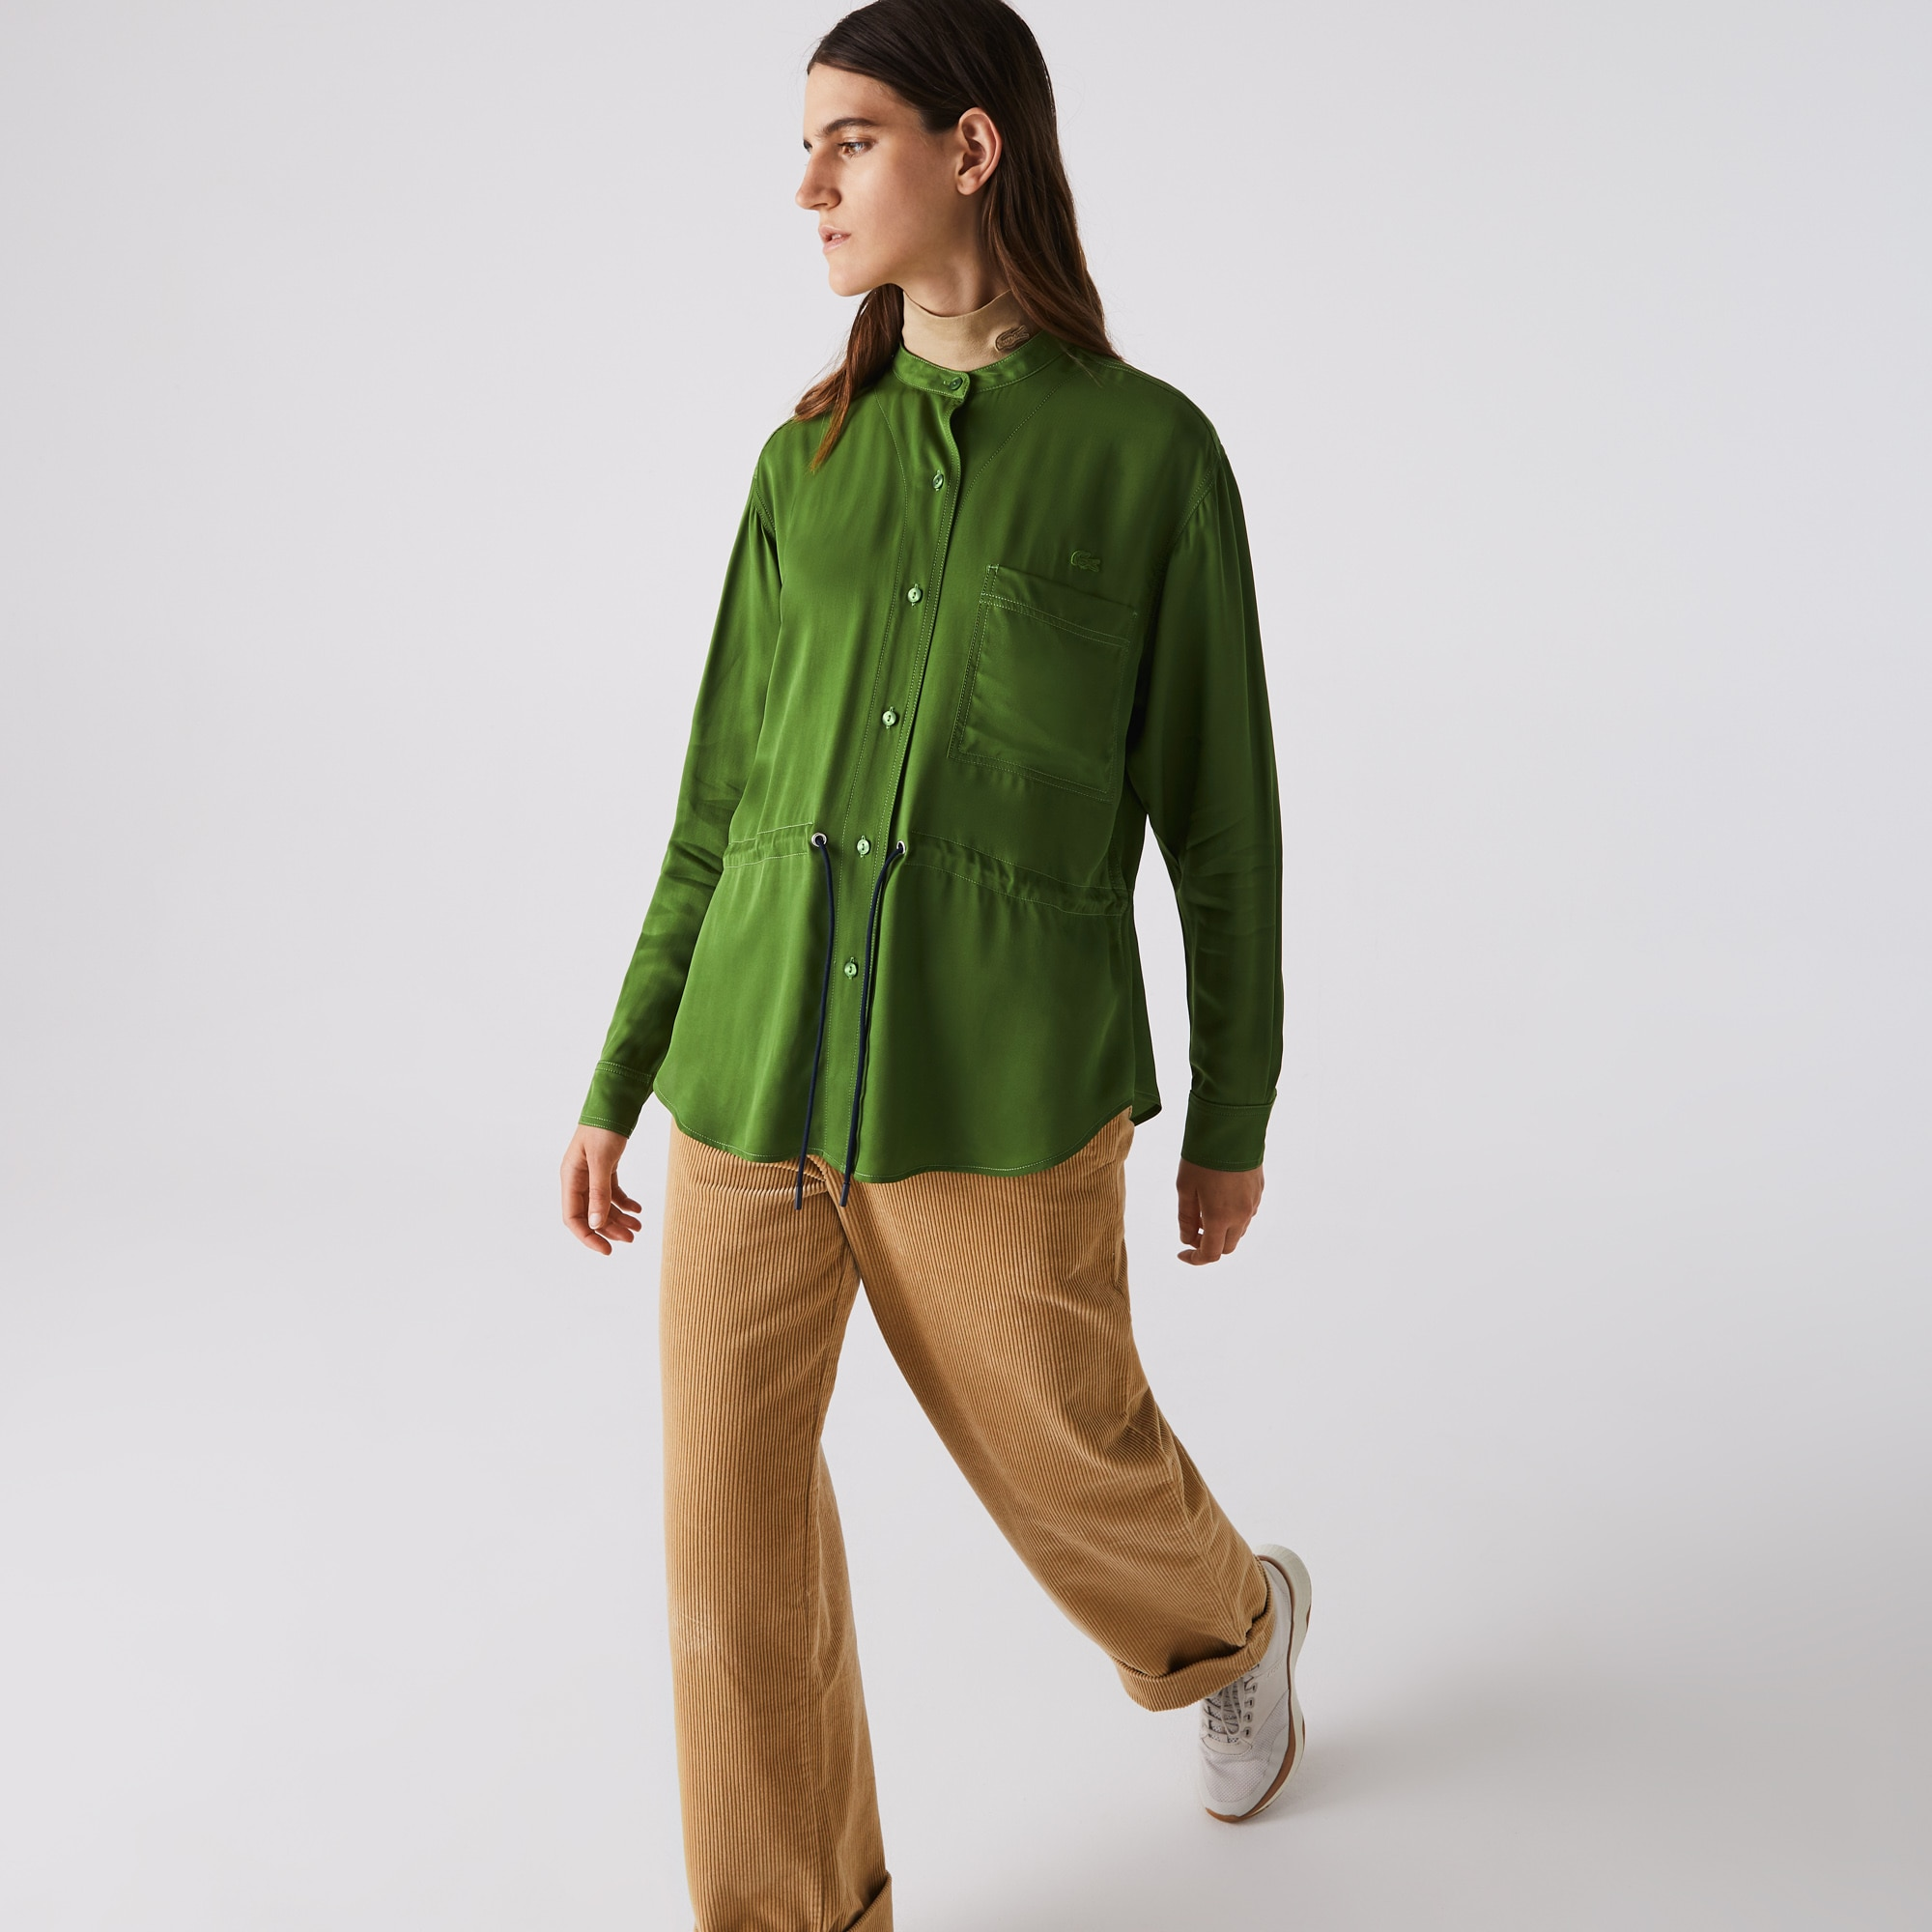 Lacoste Womens Relaxed Fit Adjustable Waist Flowy Mao Collar Shirt